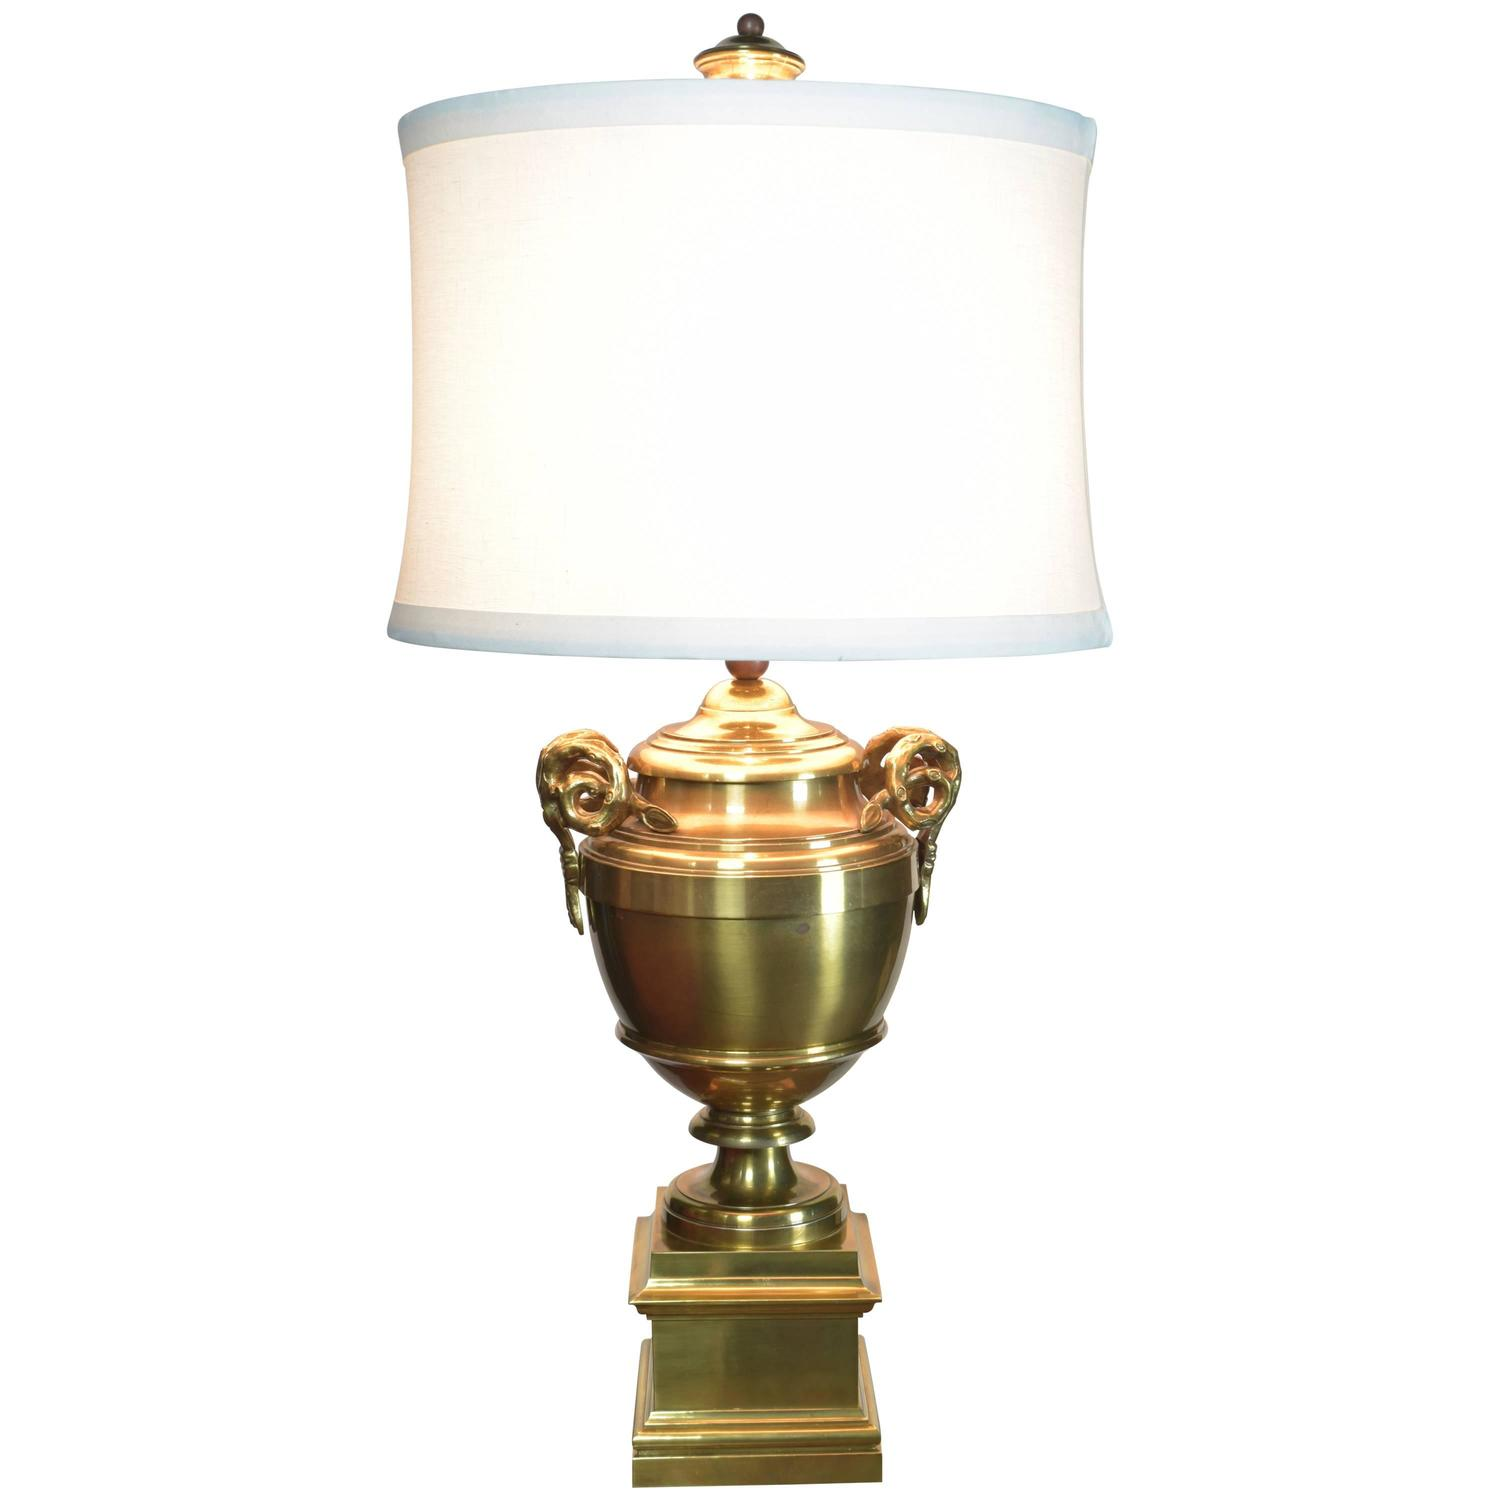 Vintage Brass Chapman Lamp For Sale at 1stdibs